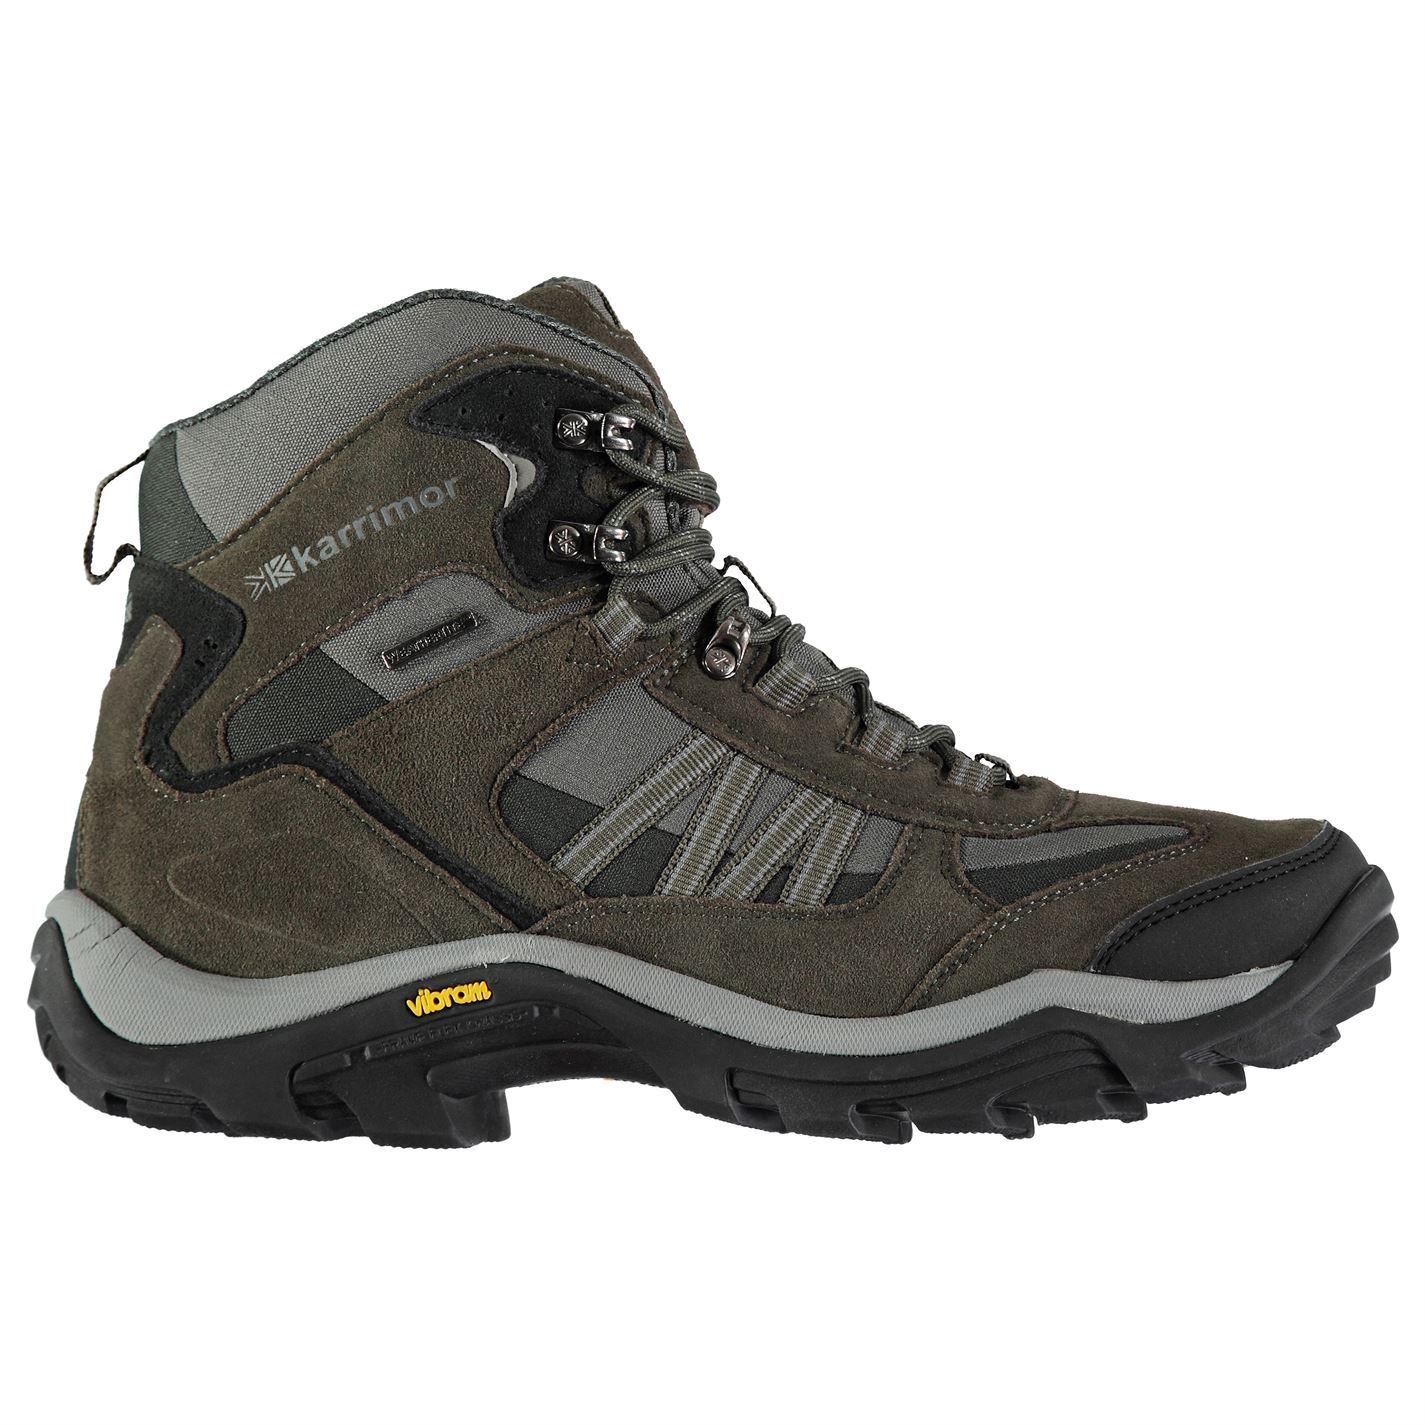 various colors factory outlets factory outlets Karrimor Aspen Mid Weathertite Waterproof Walking Boots Mens Brown ...